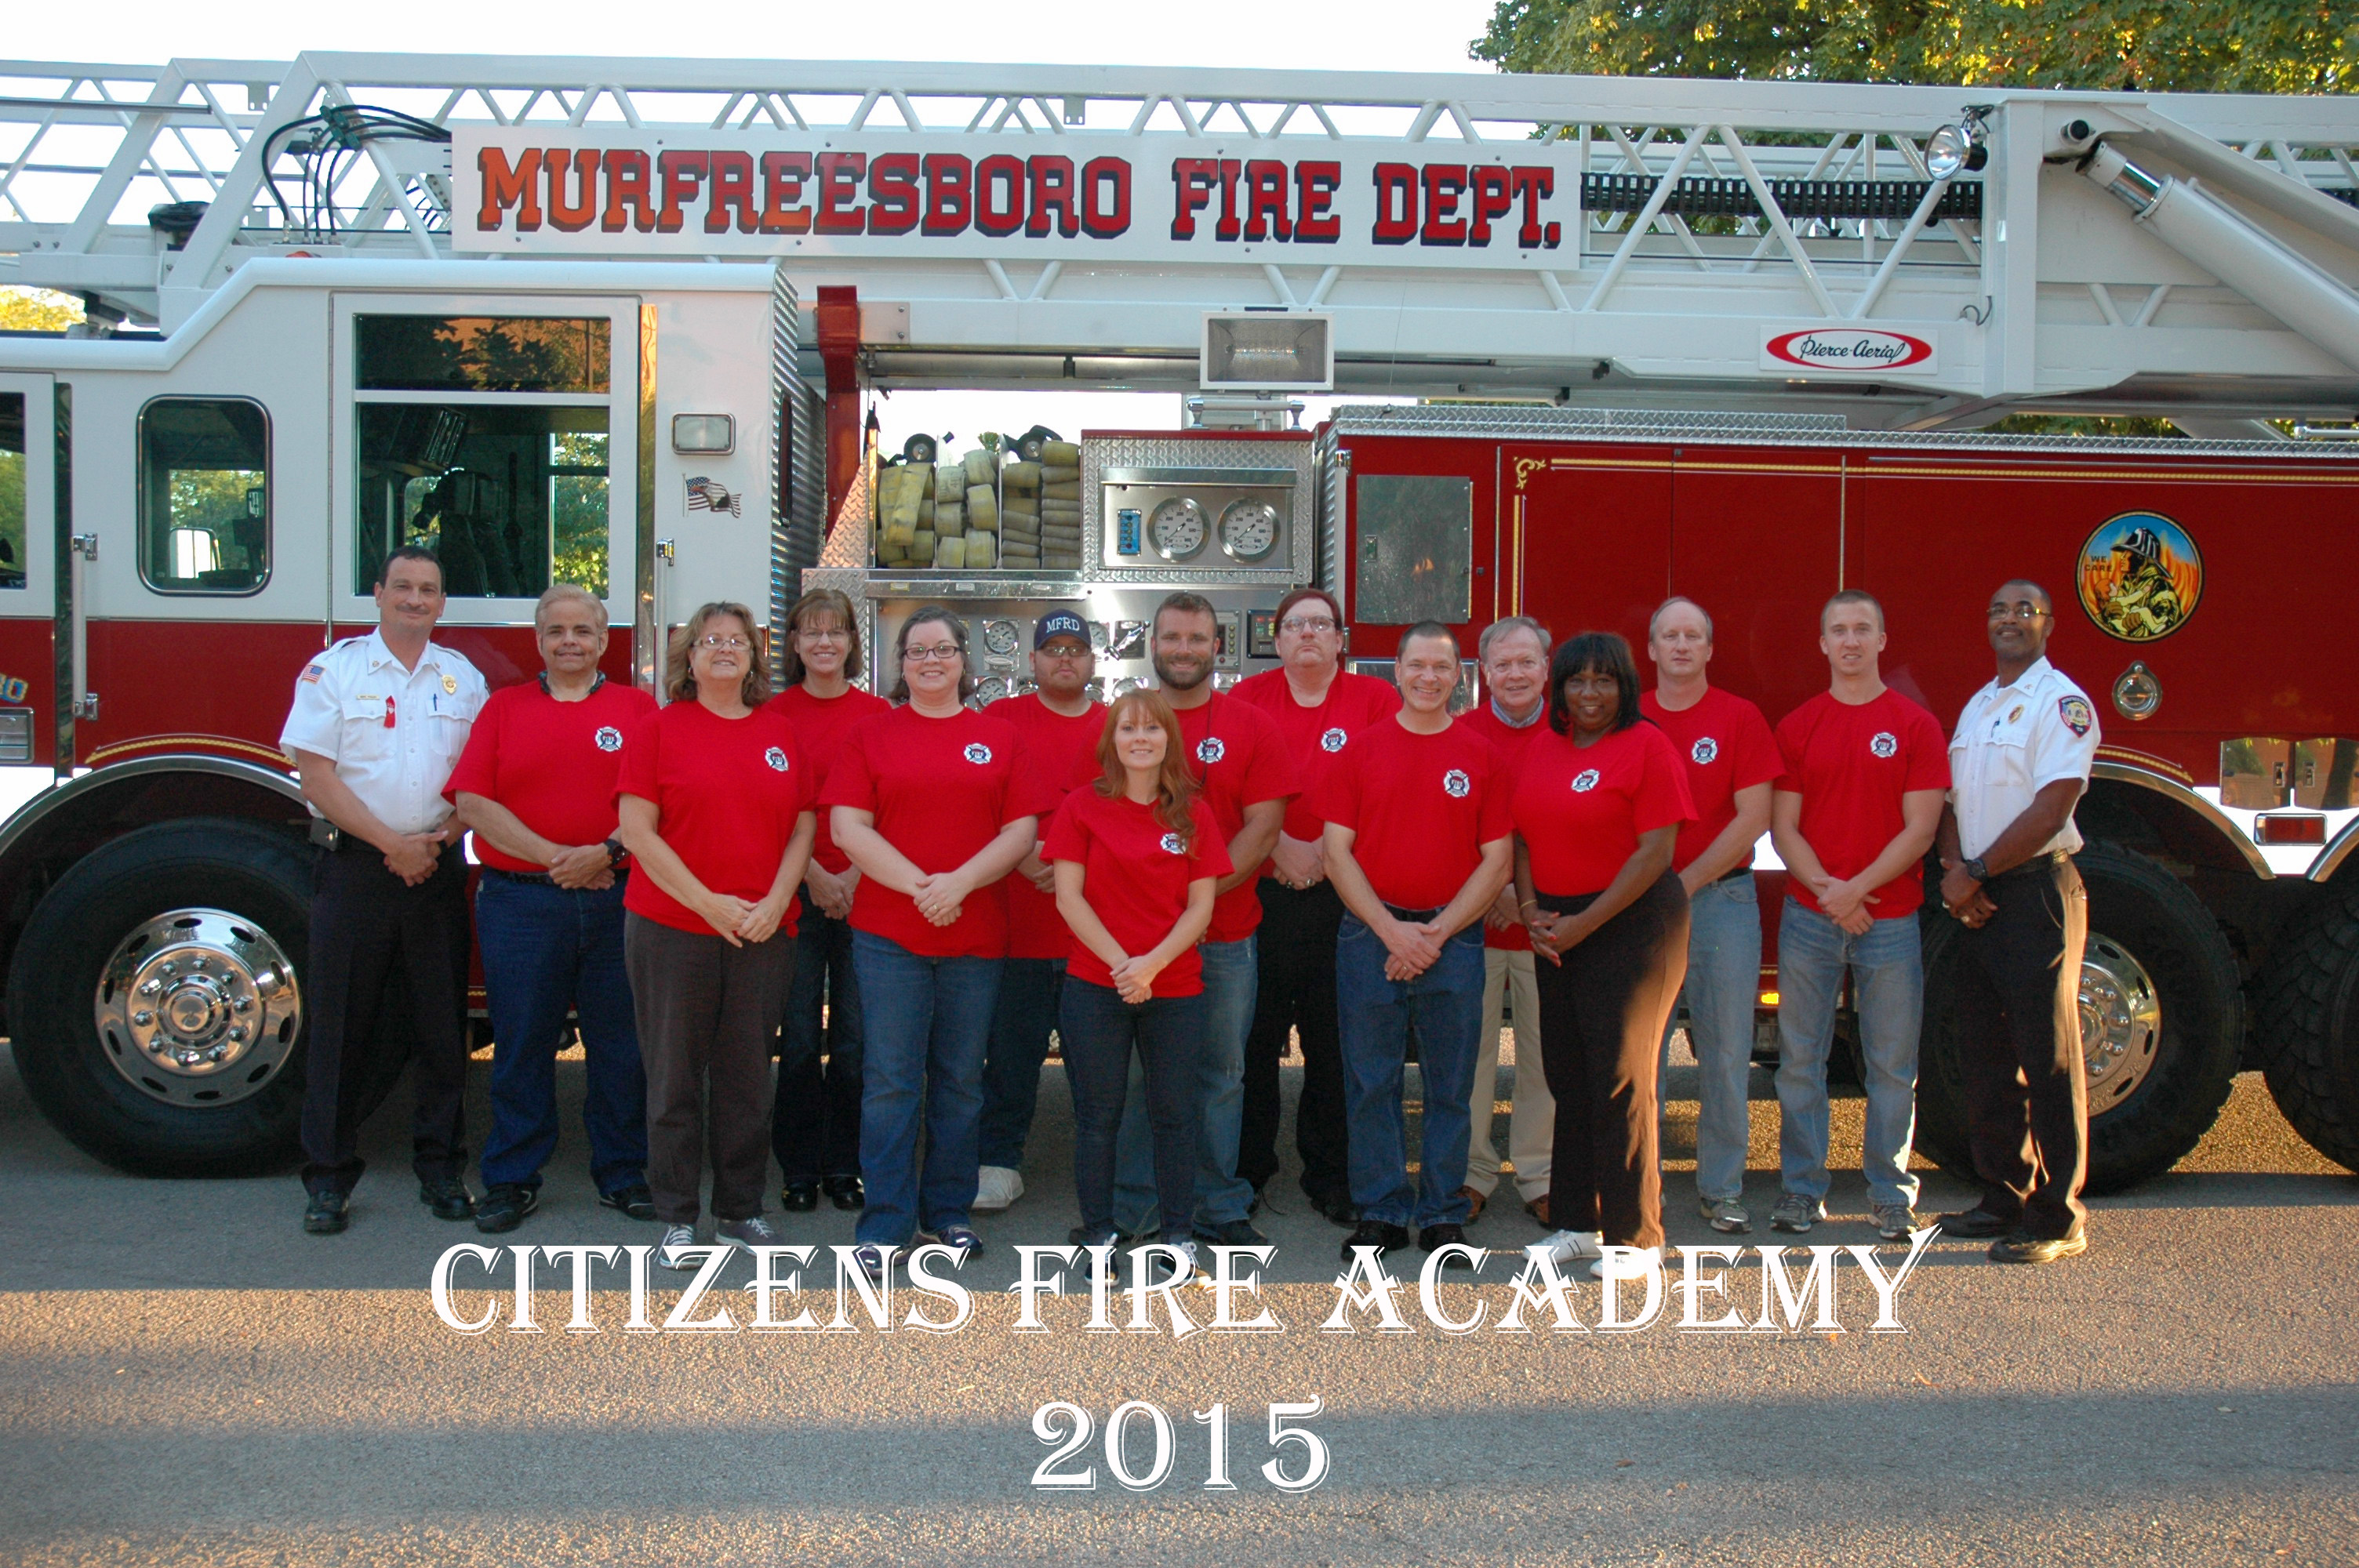 Thirteen Graduate from MFRD's Citizens Fire Academy